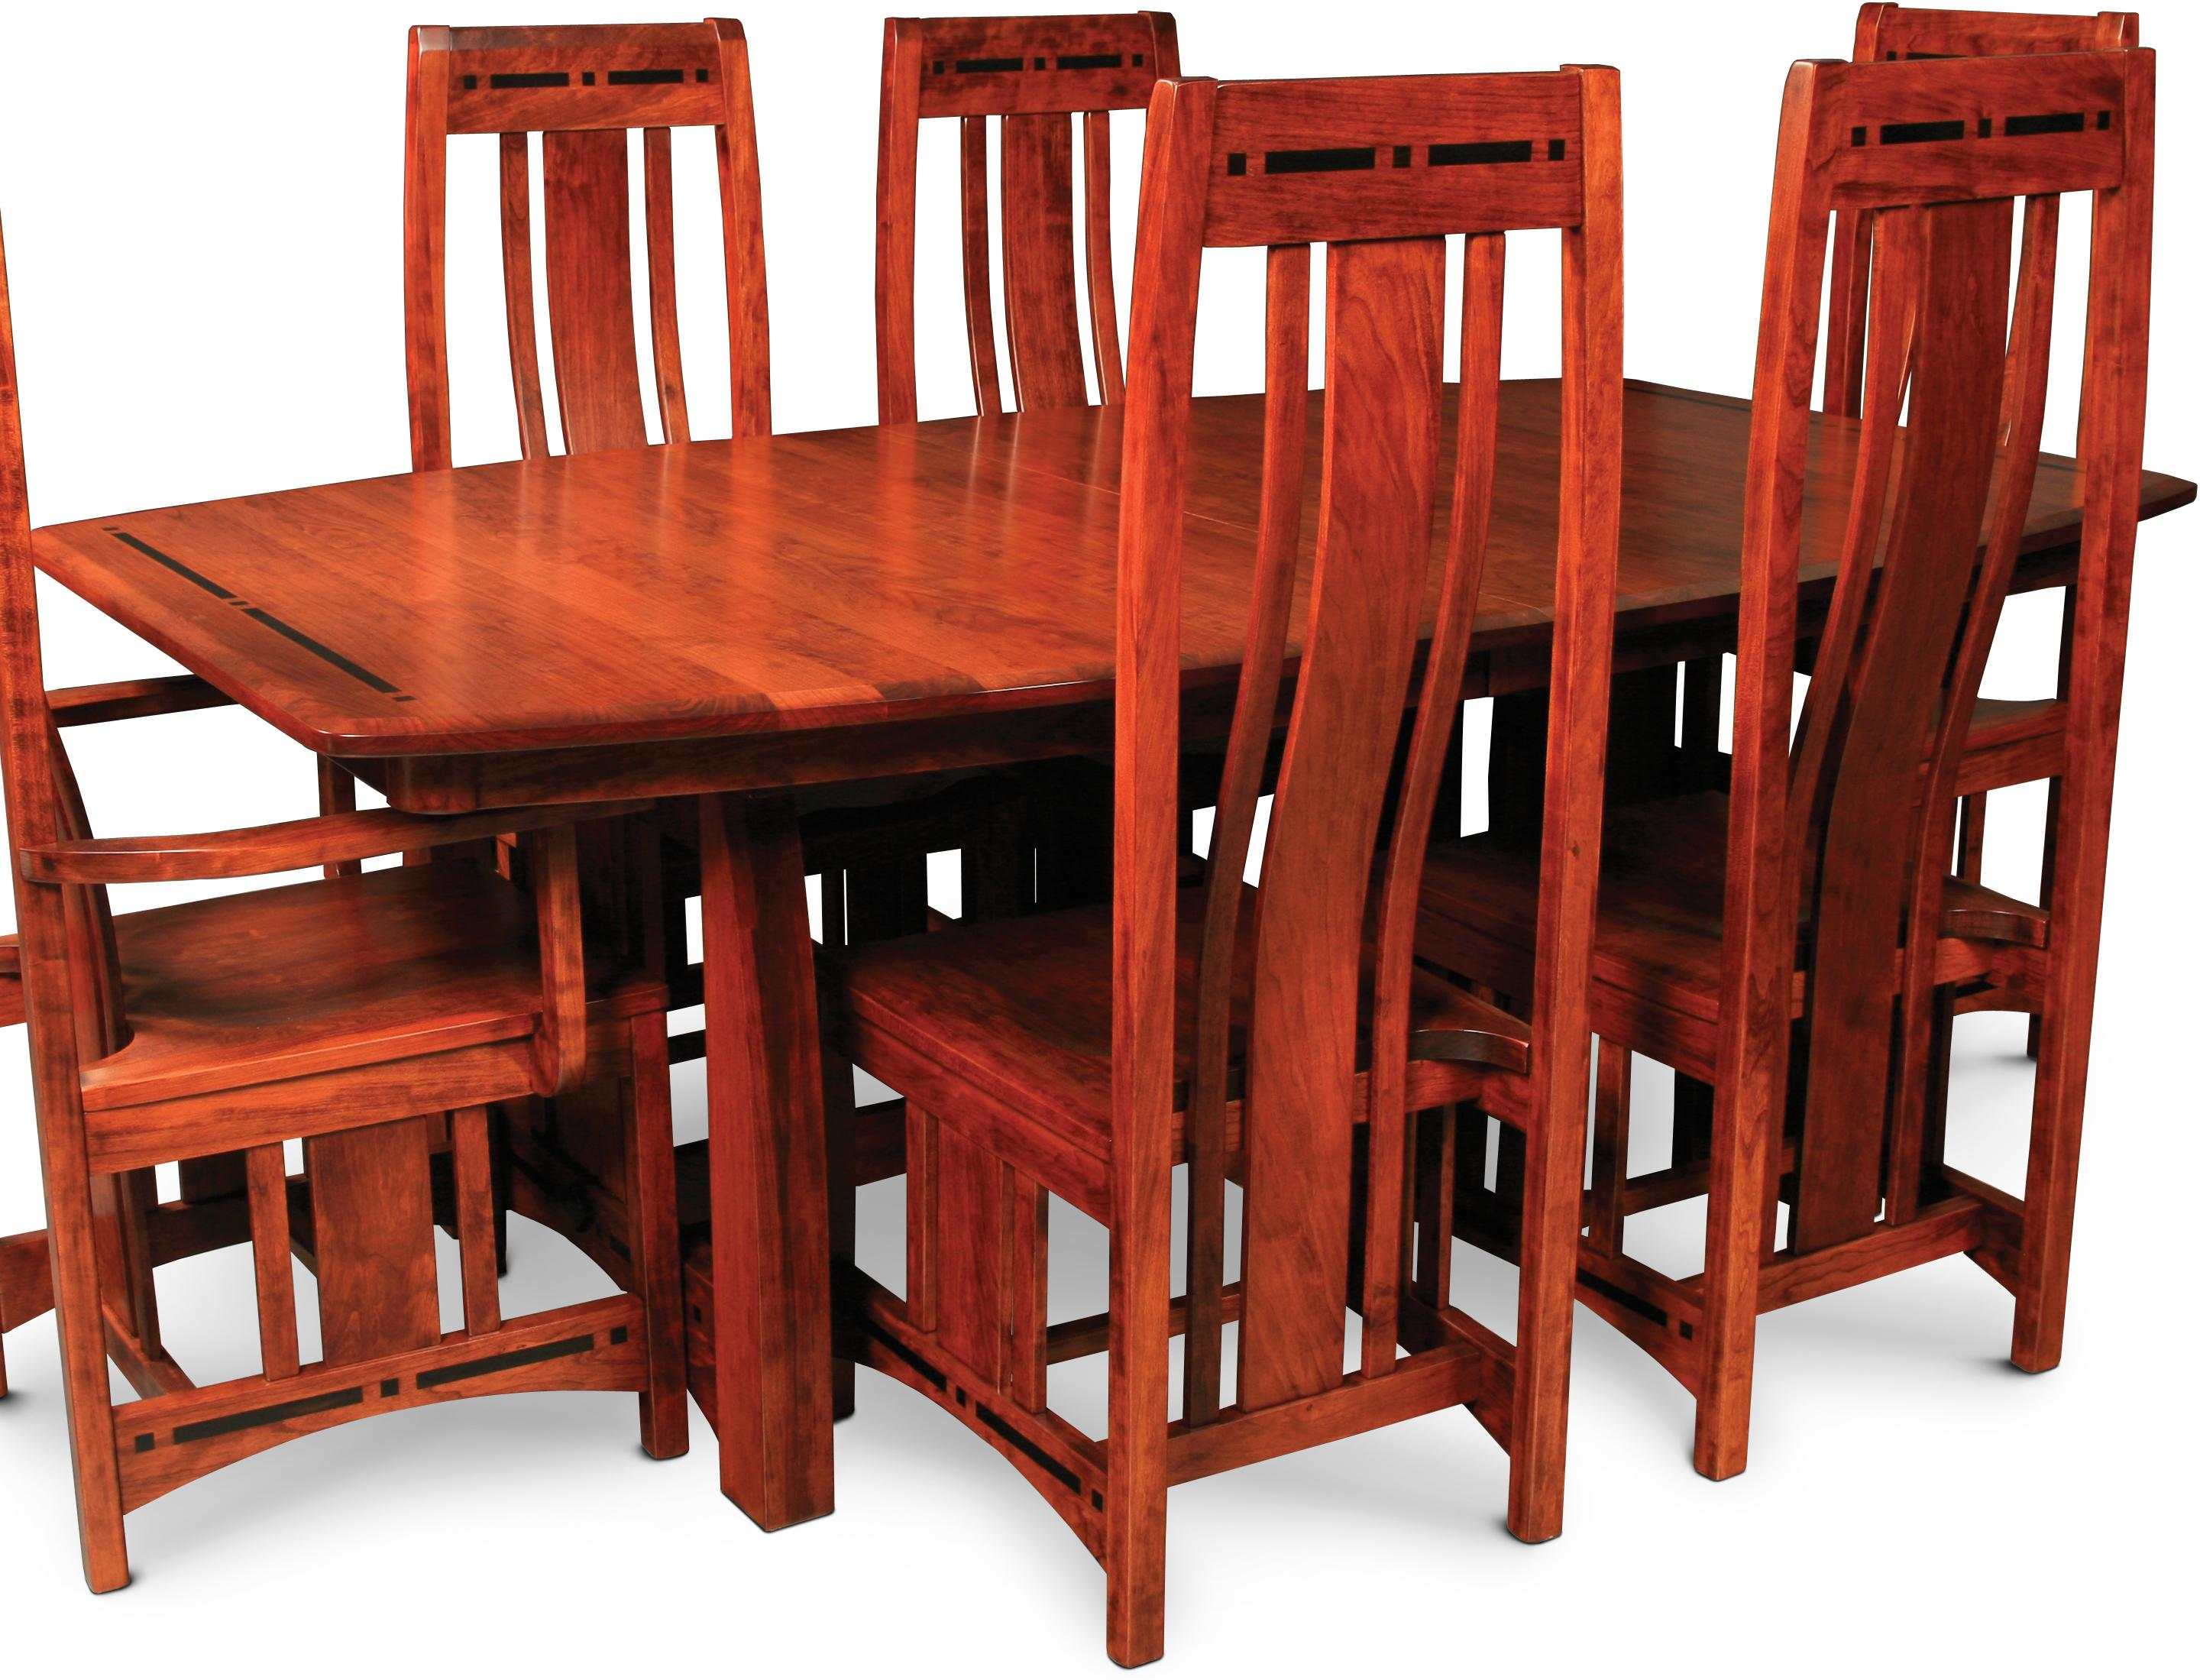 Aspen Trestle Table with Ebony Inlays by Simply Amish at Becker Furniture